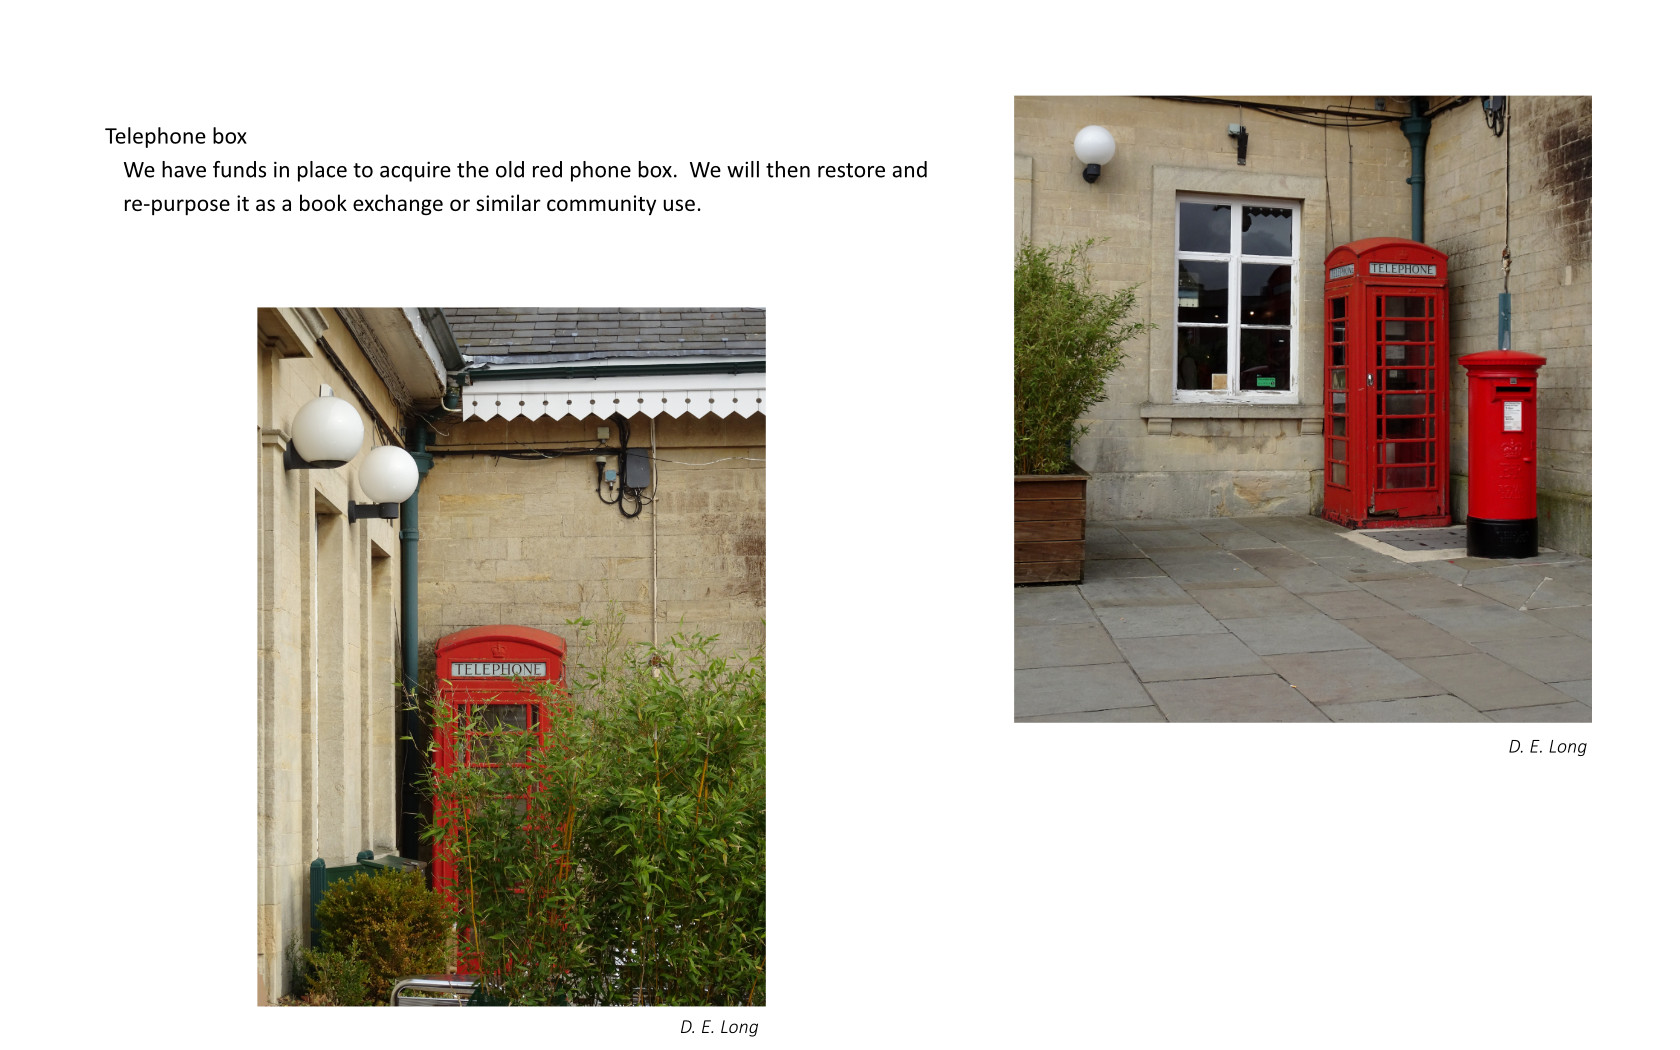 Current views of the red phone box